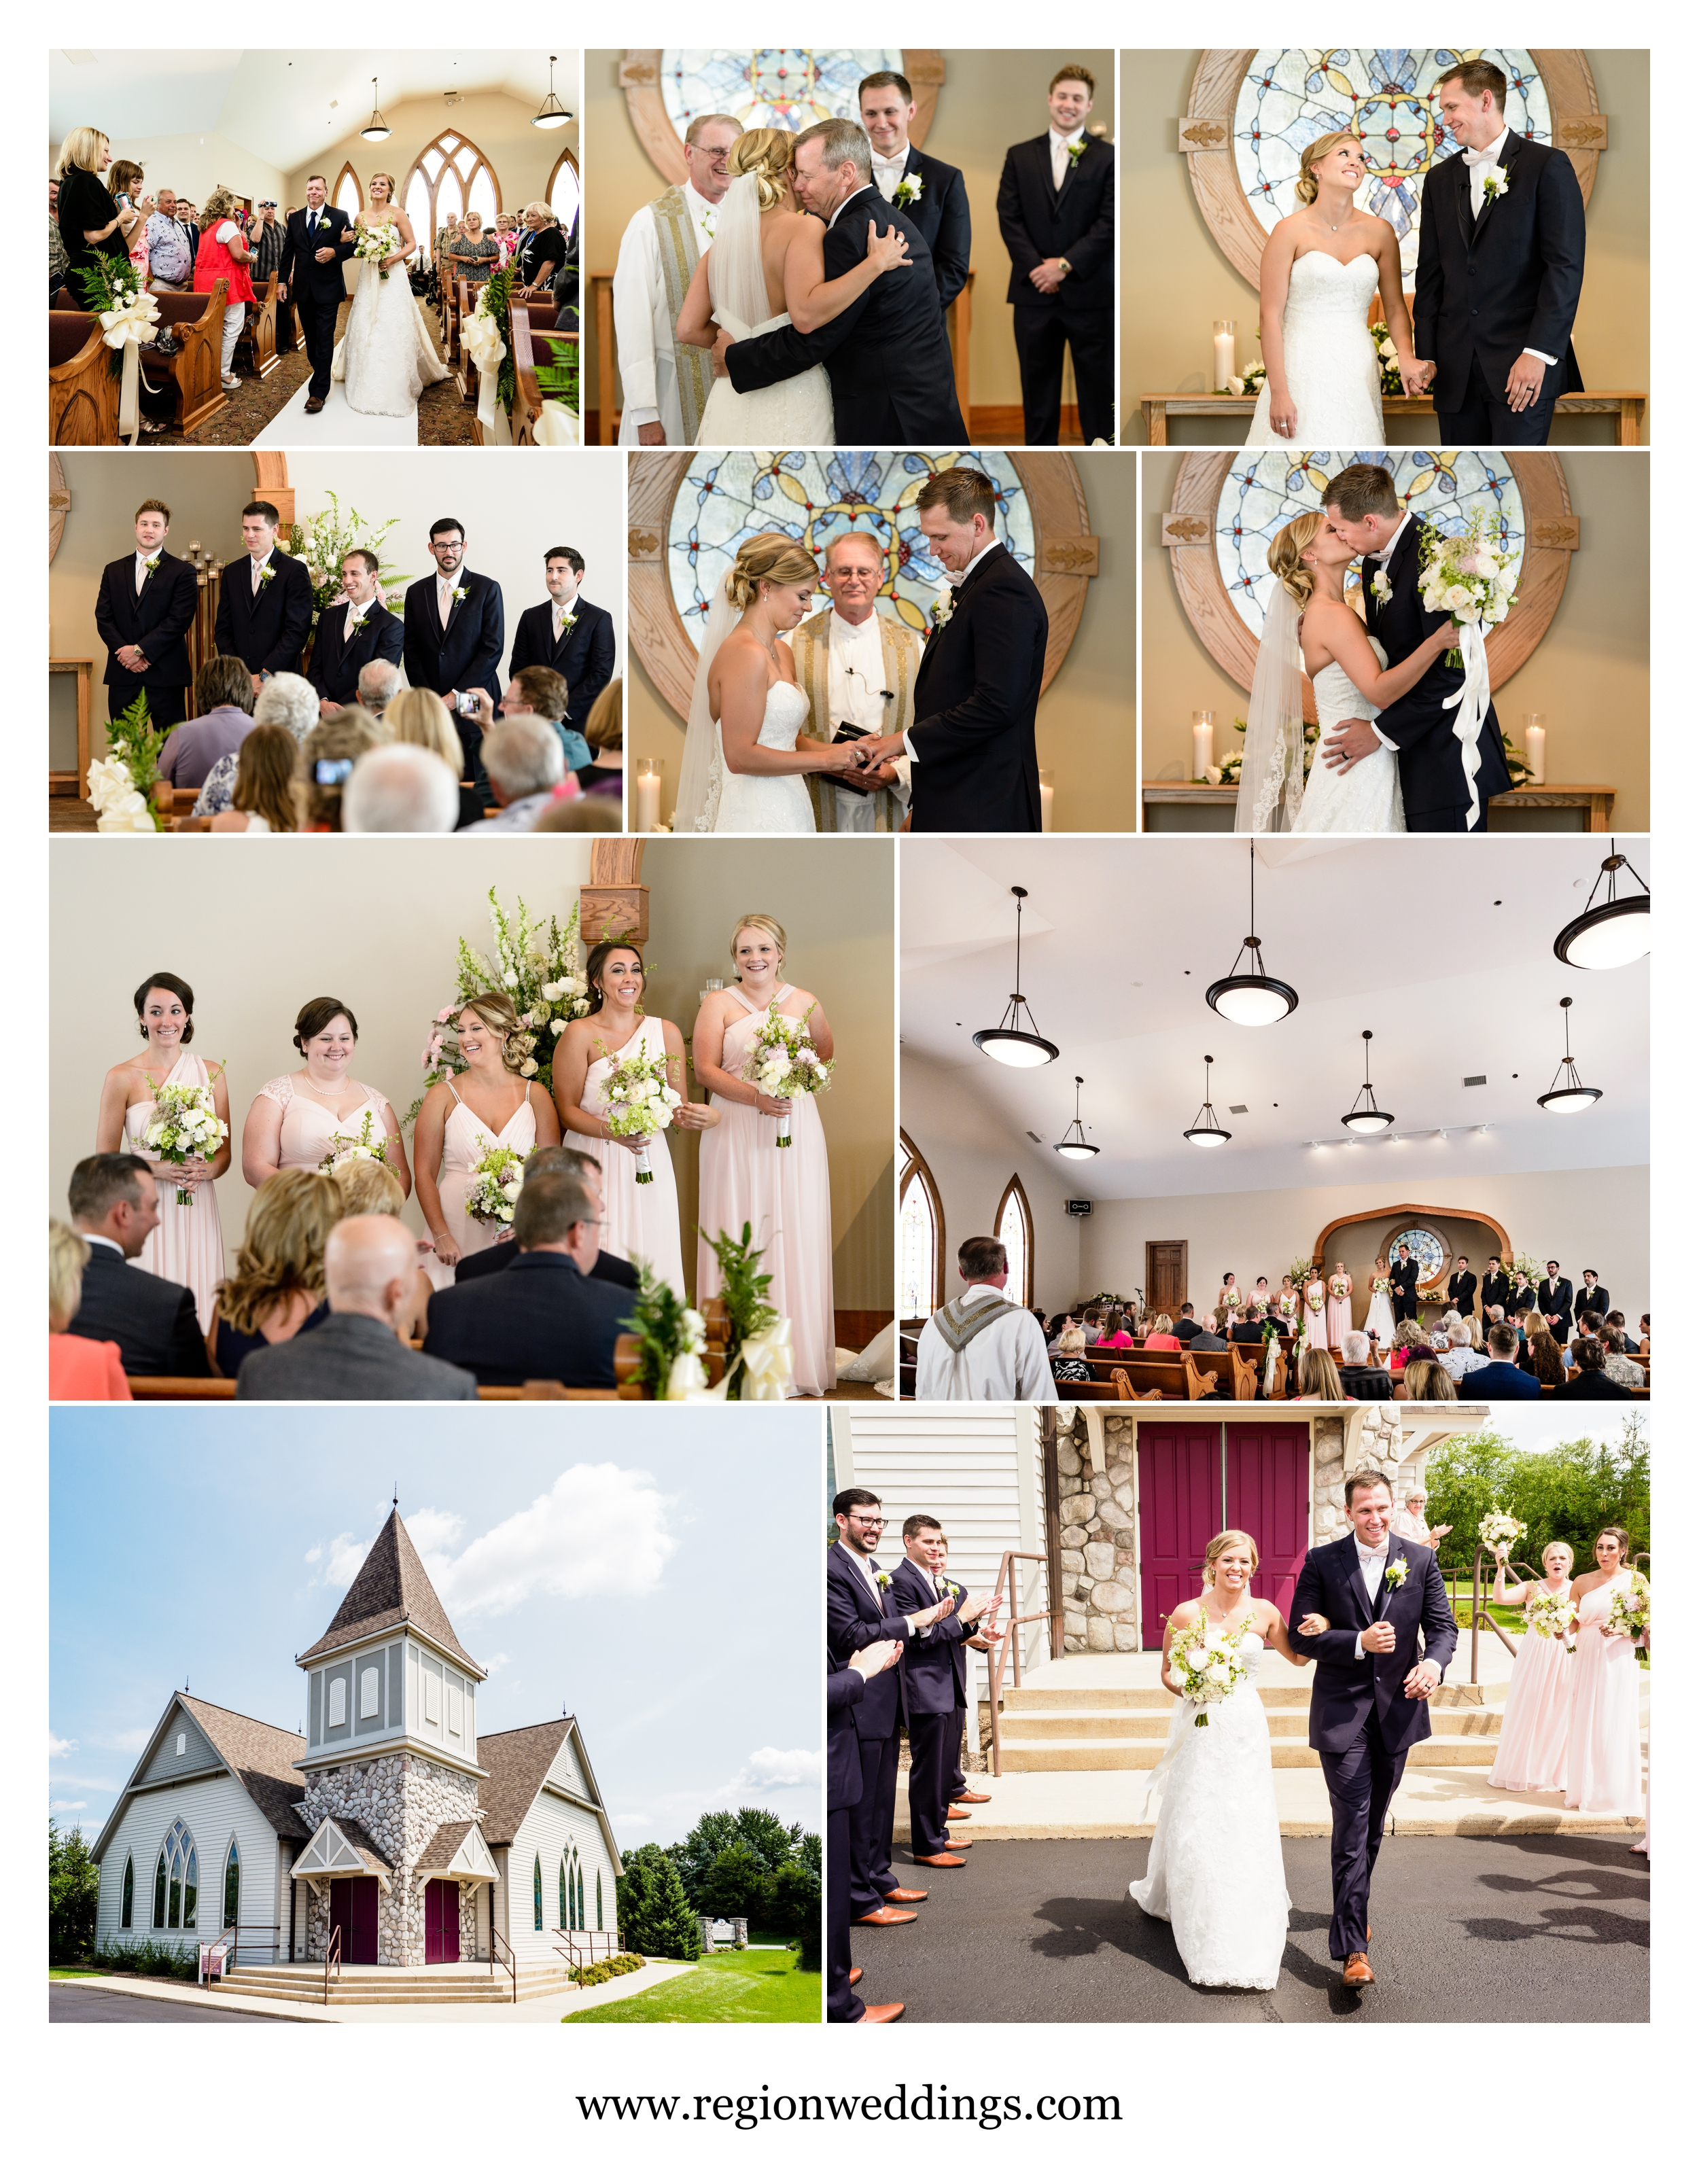 Wedding ceremony at the Wedding Chapel at Aberdeen Manor.